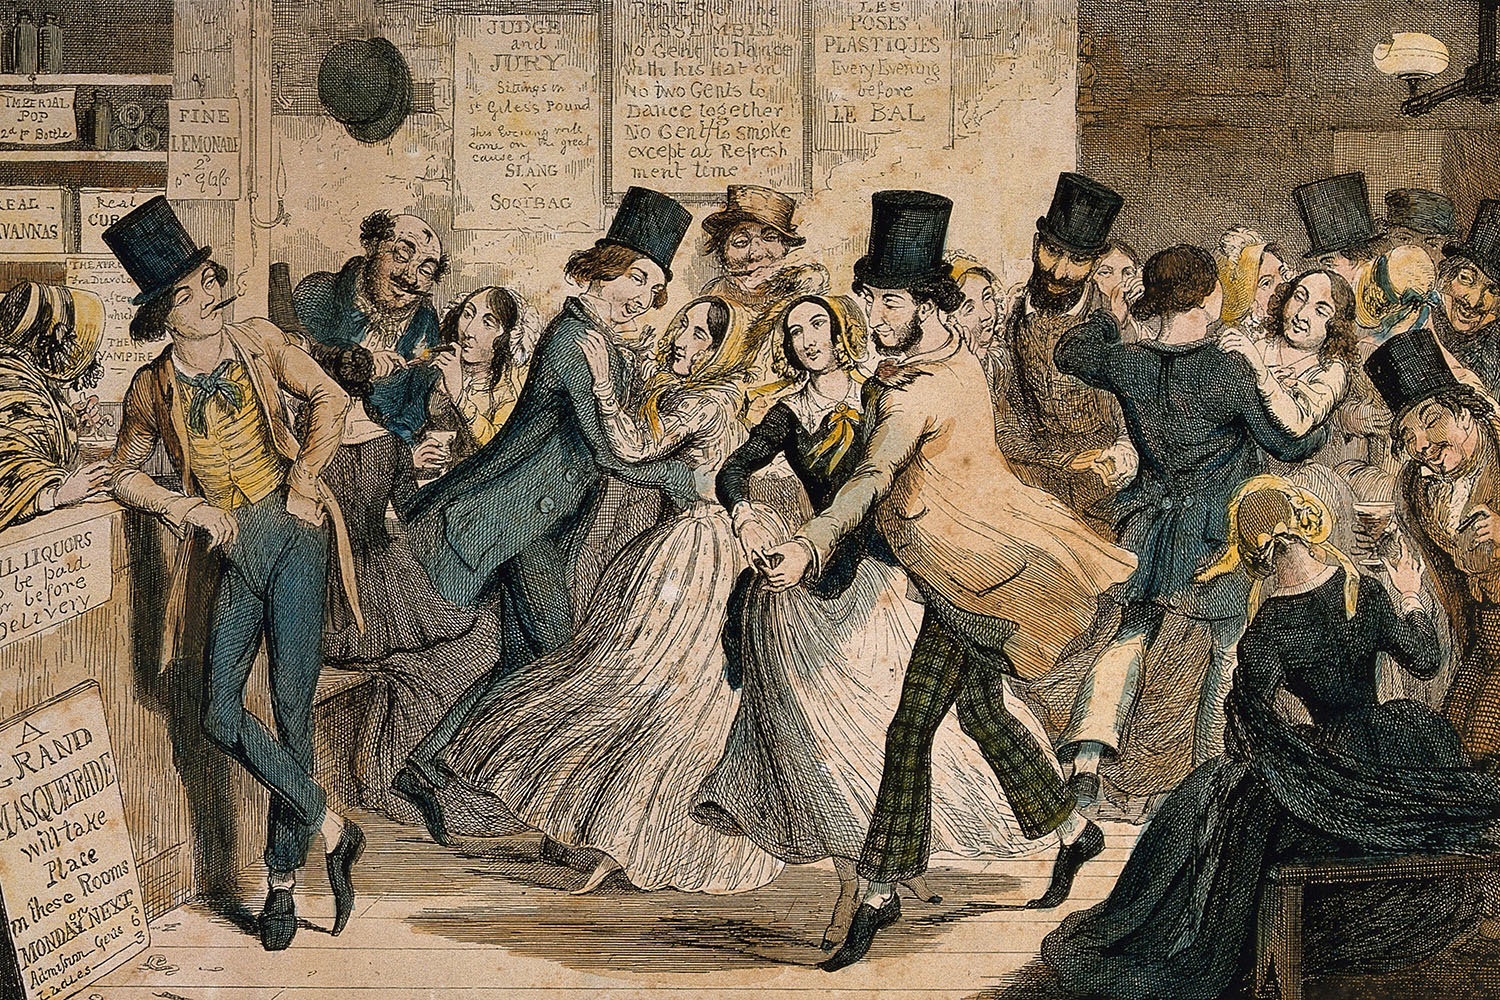 A drunken scene in a dancing hall with a sly customer eyeing a young girl. Coloured etching by George Cruikshank, 1848.